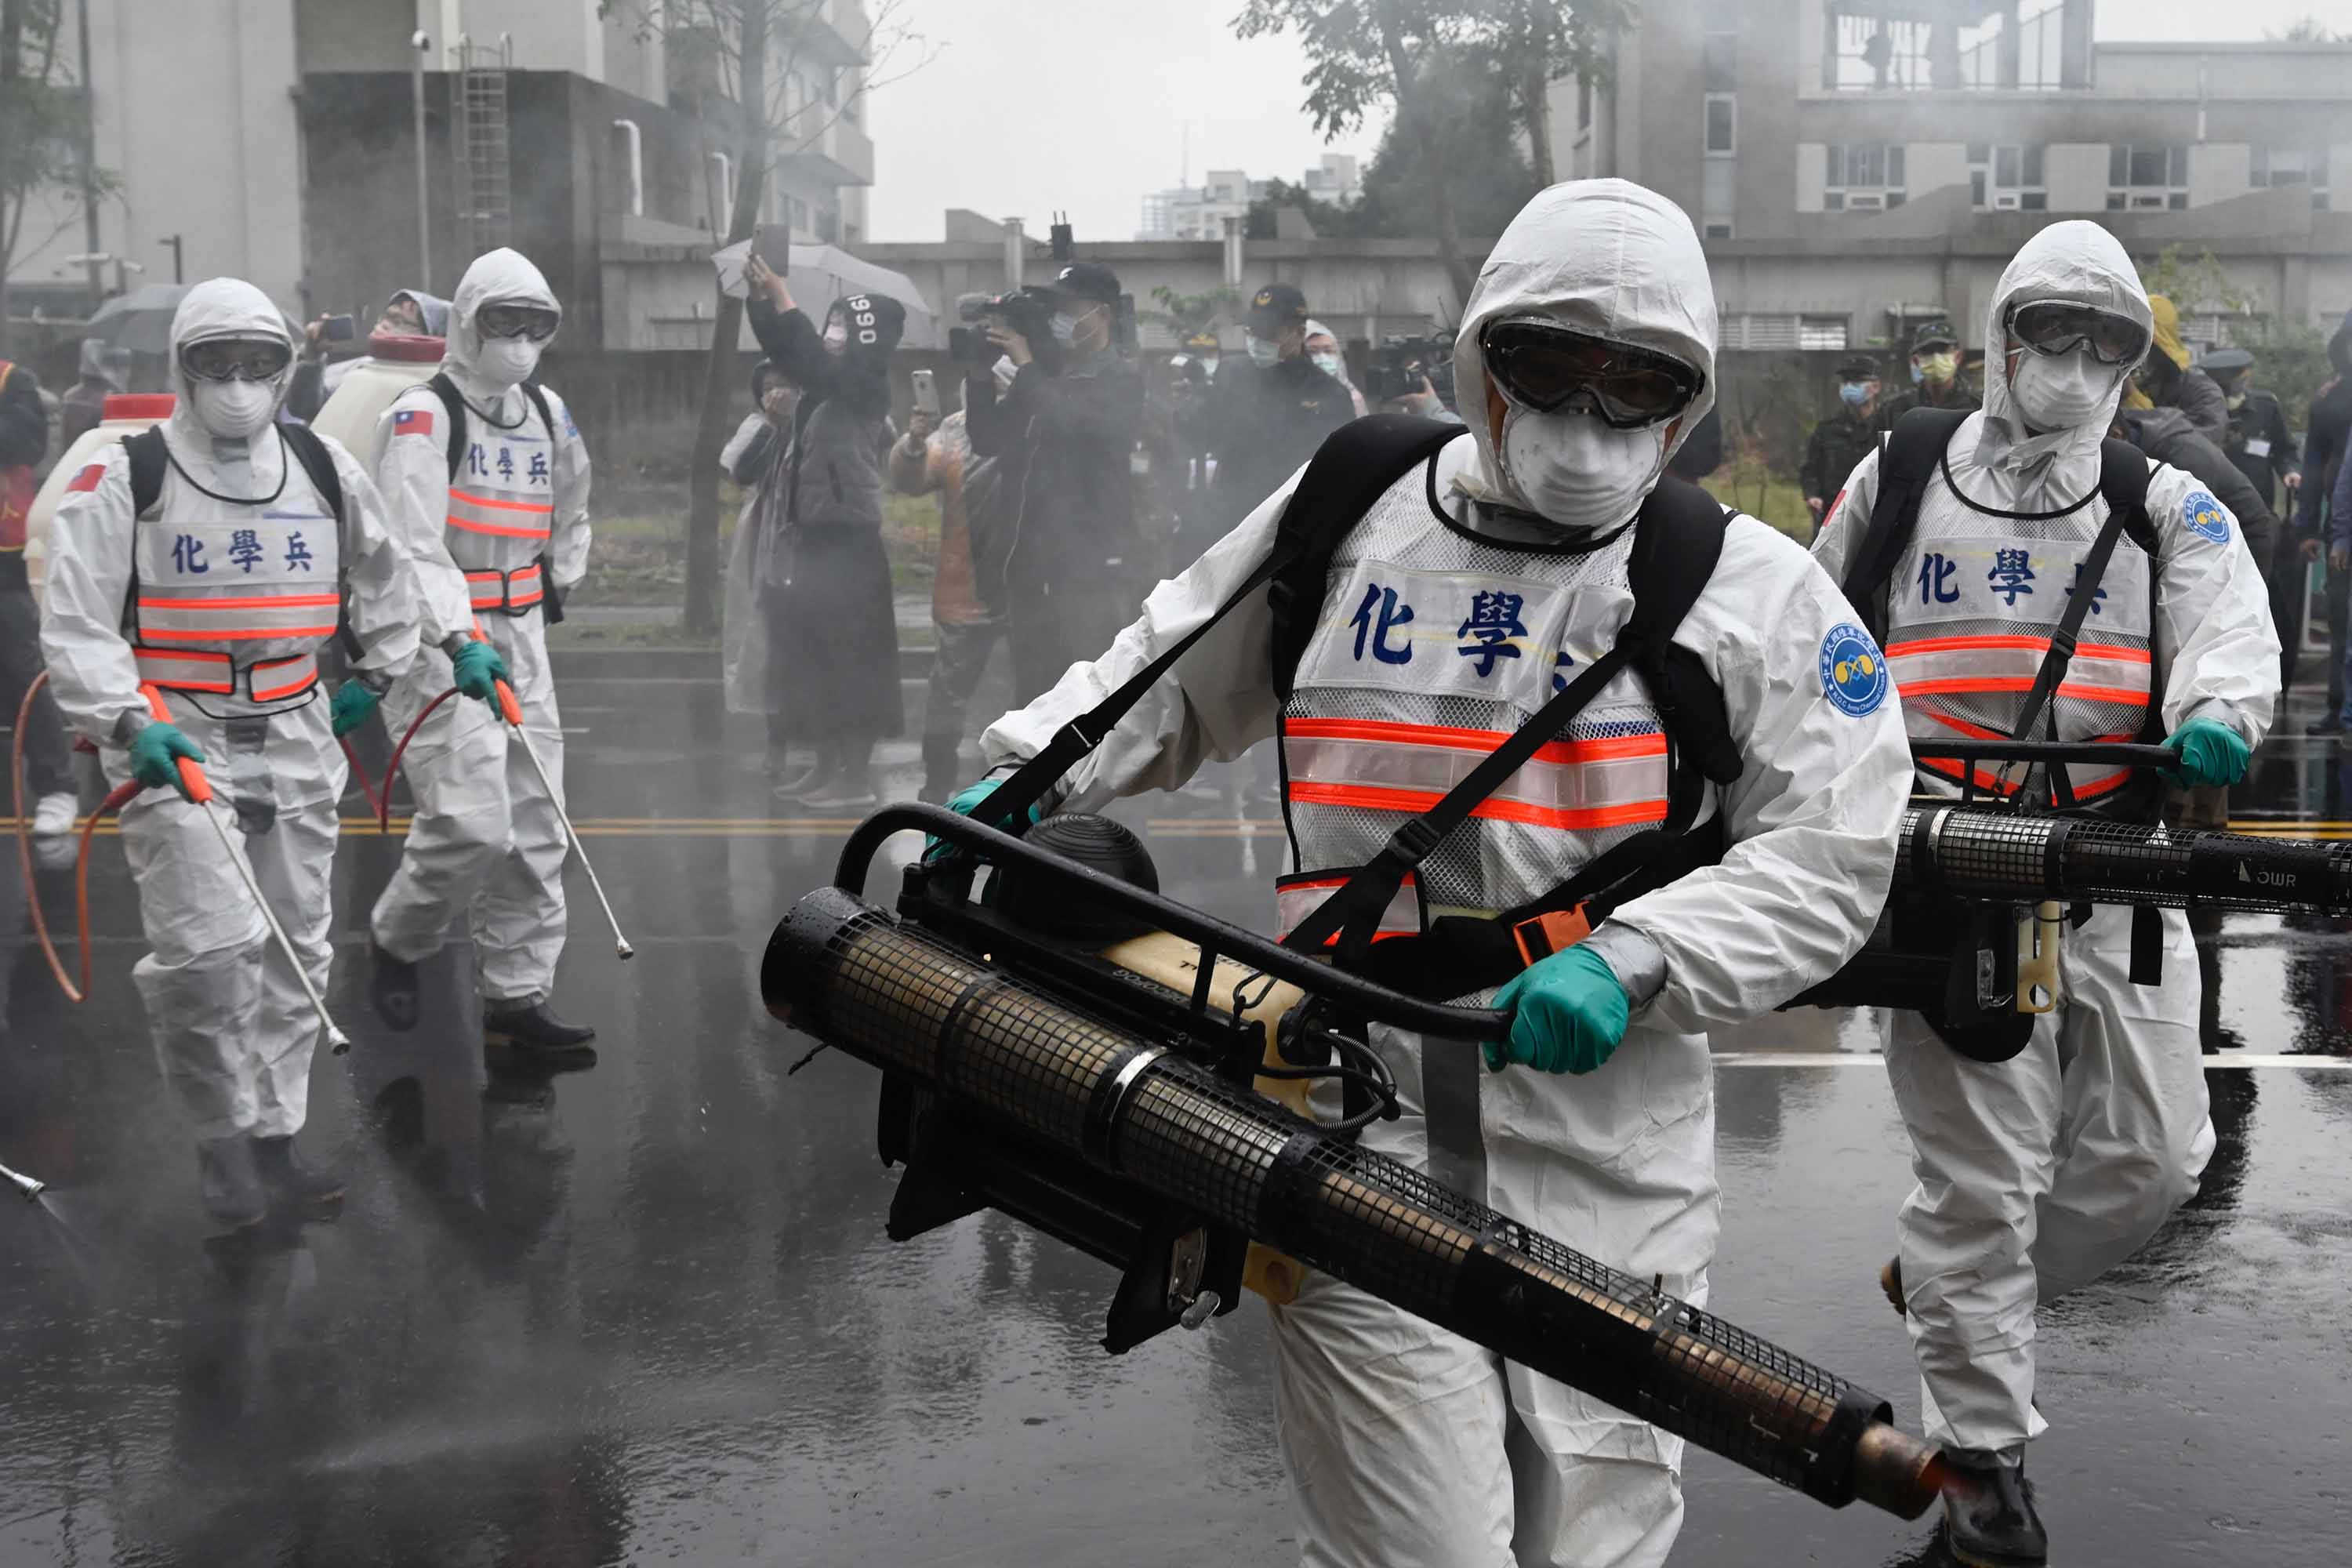 Members of Taiwan's military take part in a drill to prevent the spread of the coronavirus, in New Taipei City on March 14.